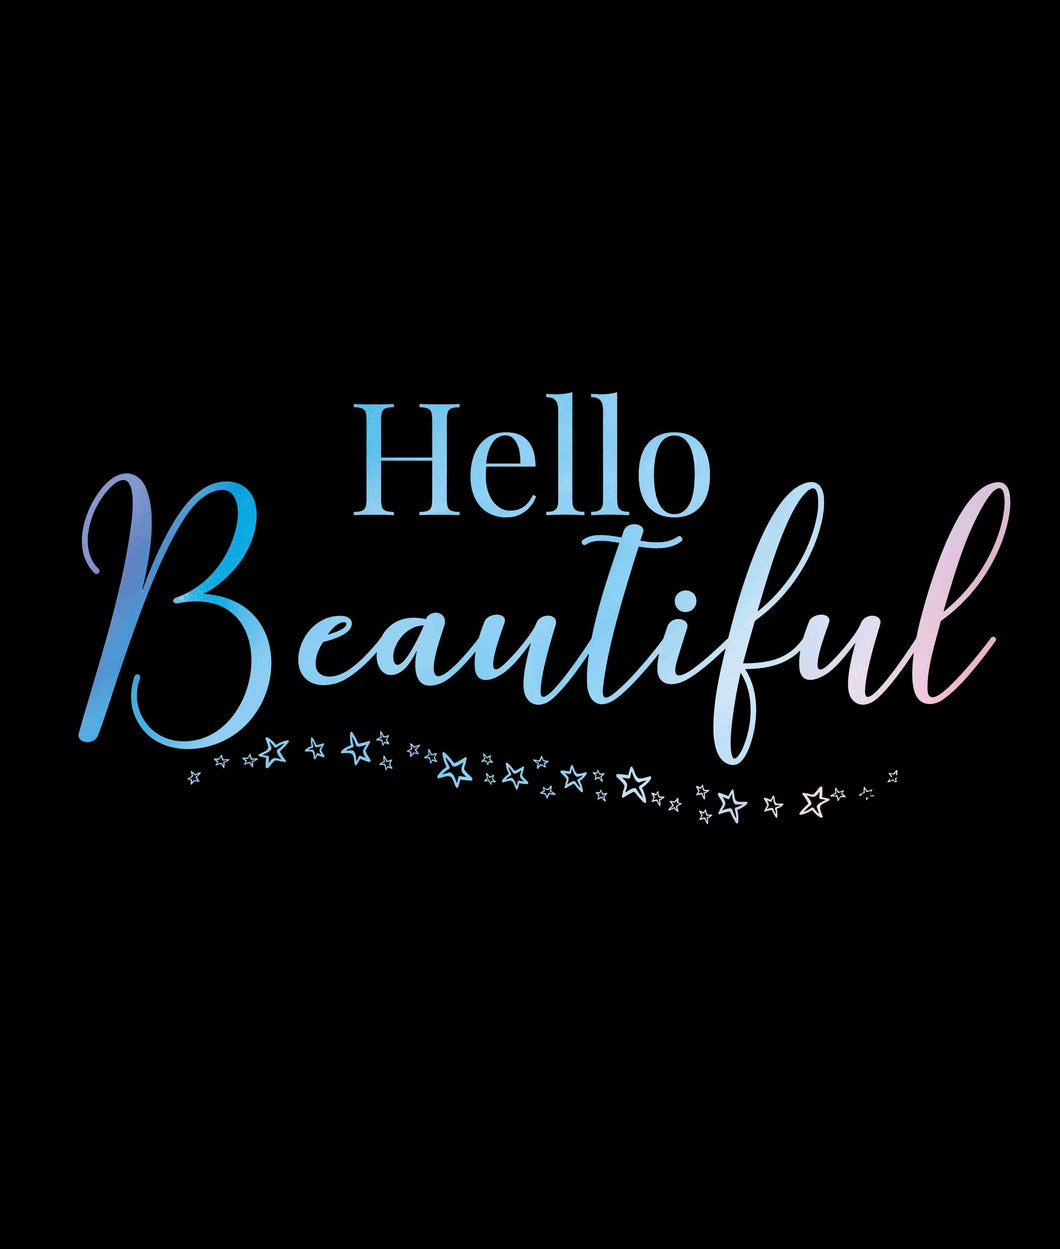 Hello Beautiful Self Reflection Tees Premium